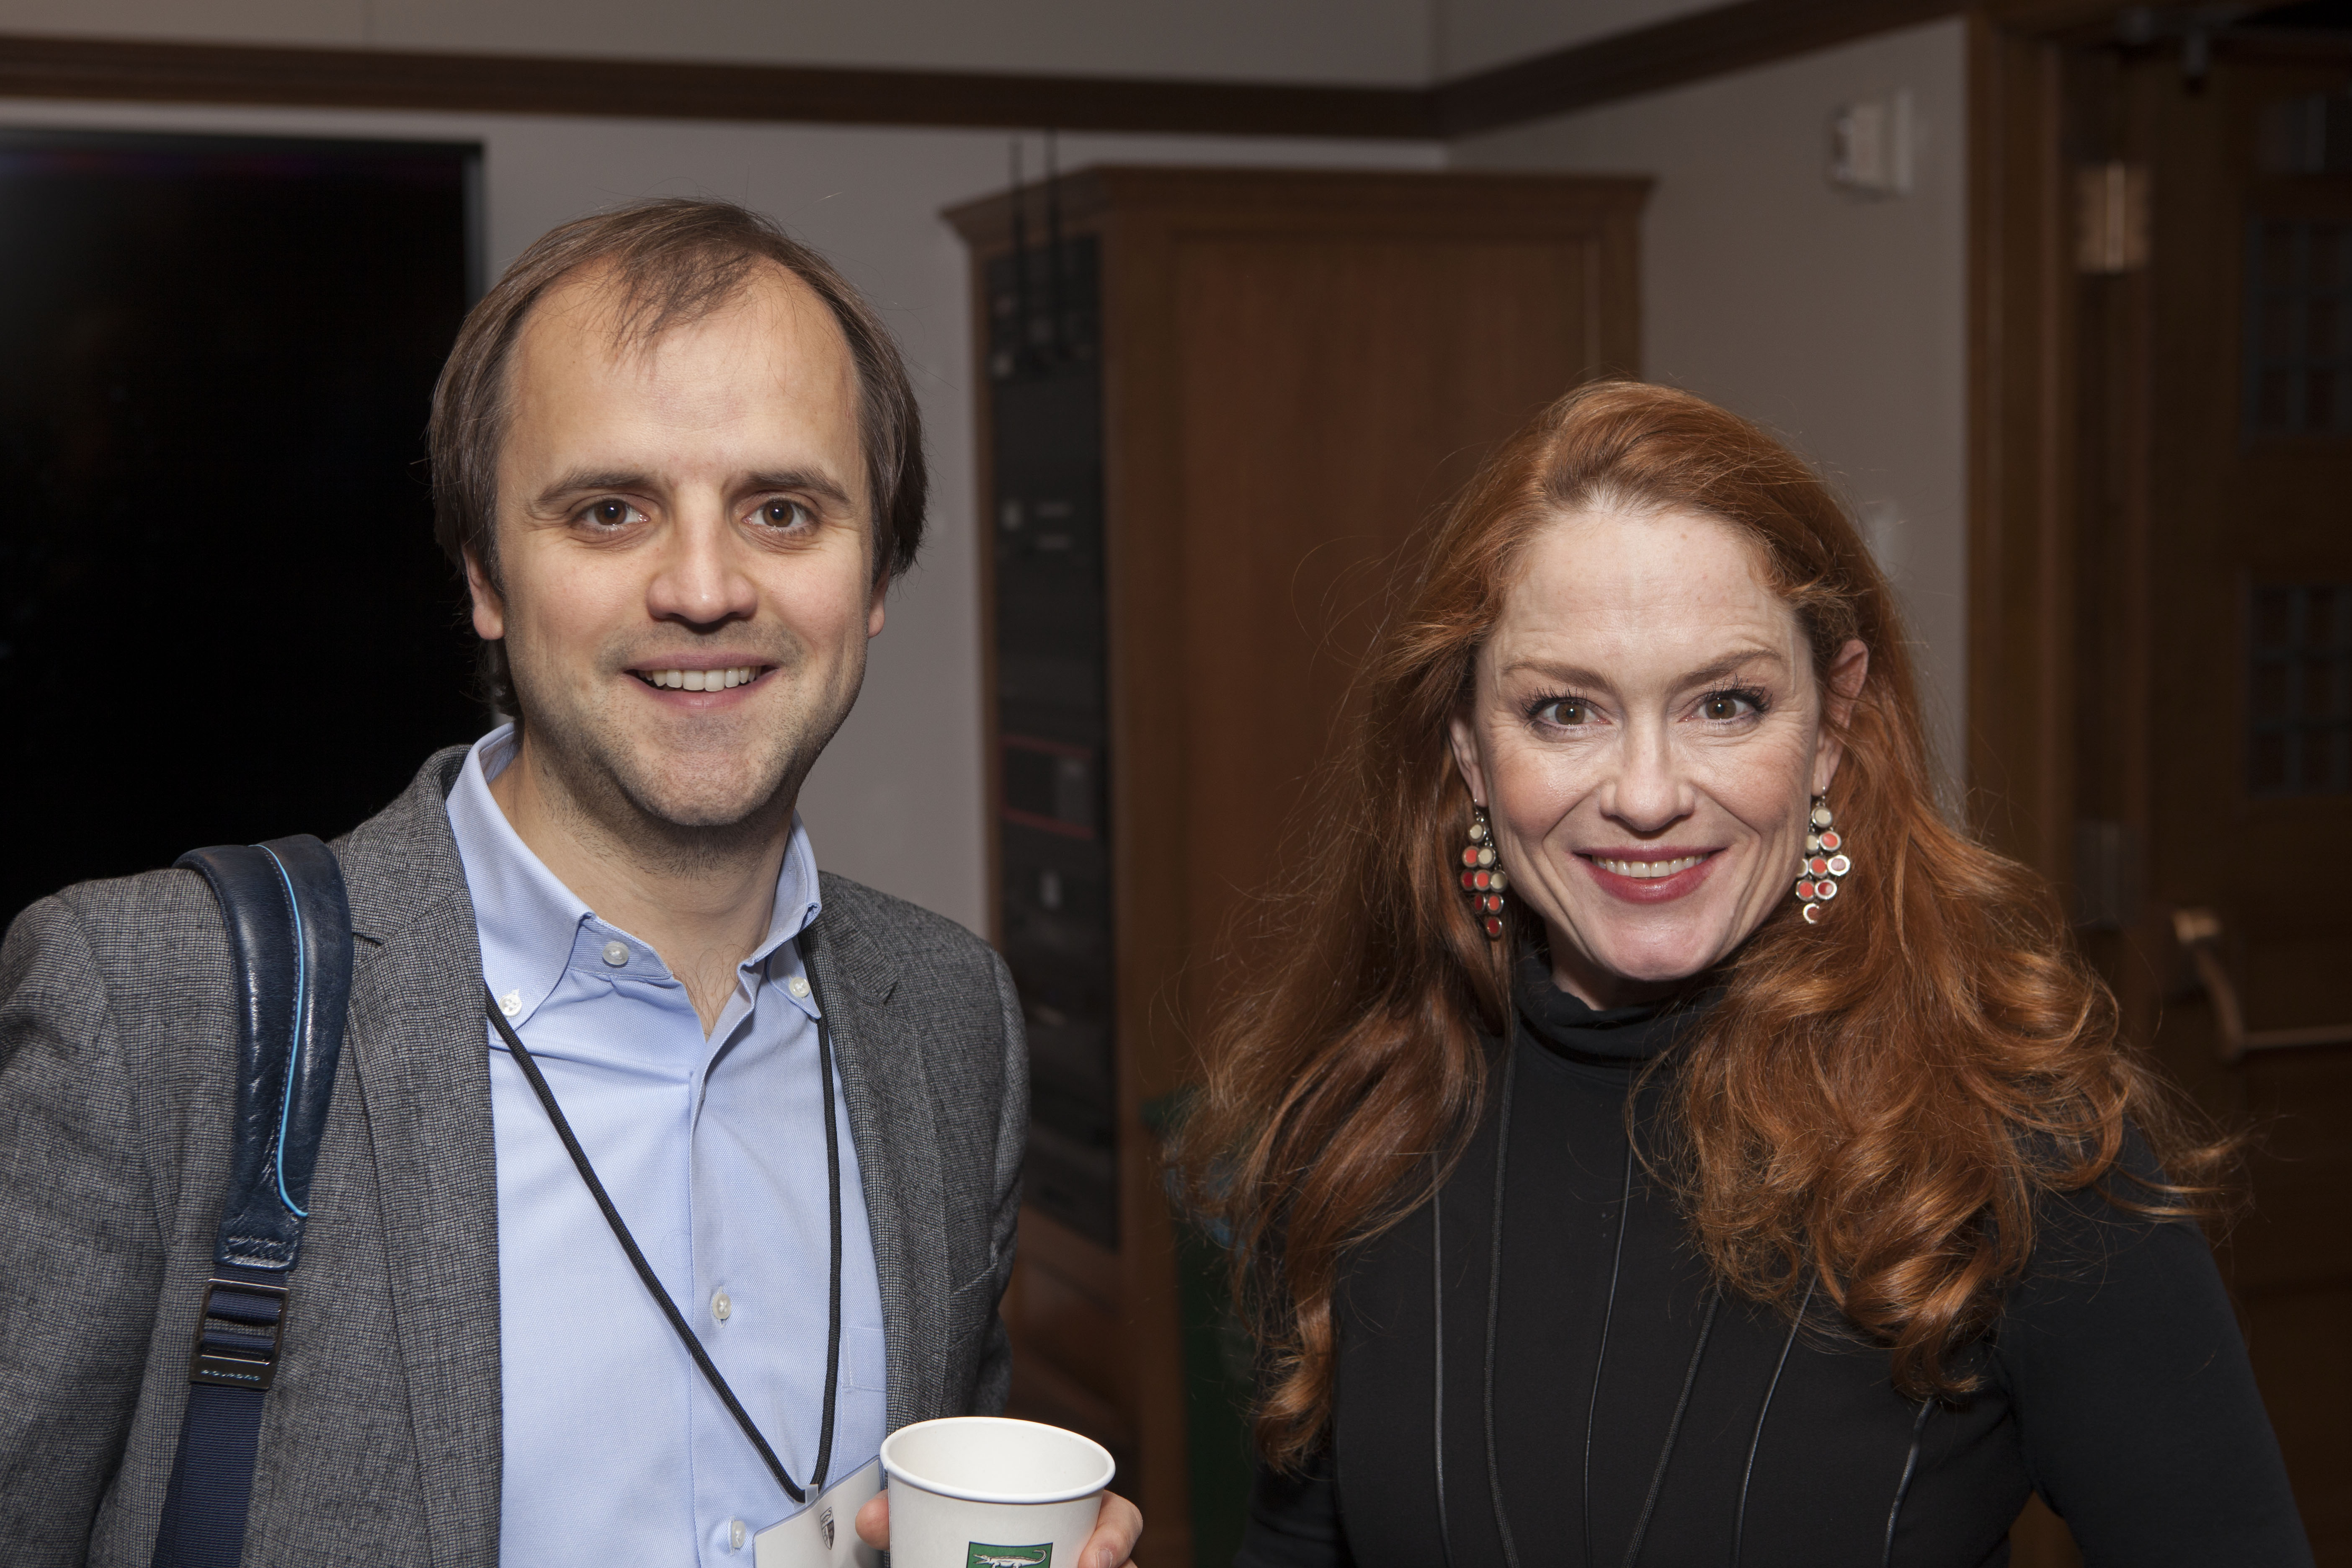 MIT Sloan Prof. Christian Catalini and Nina Kilbride